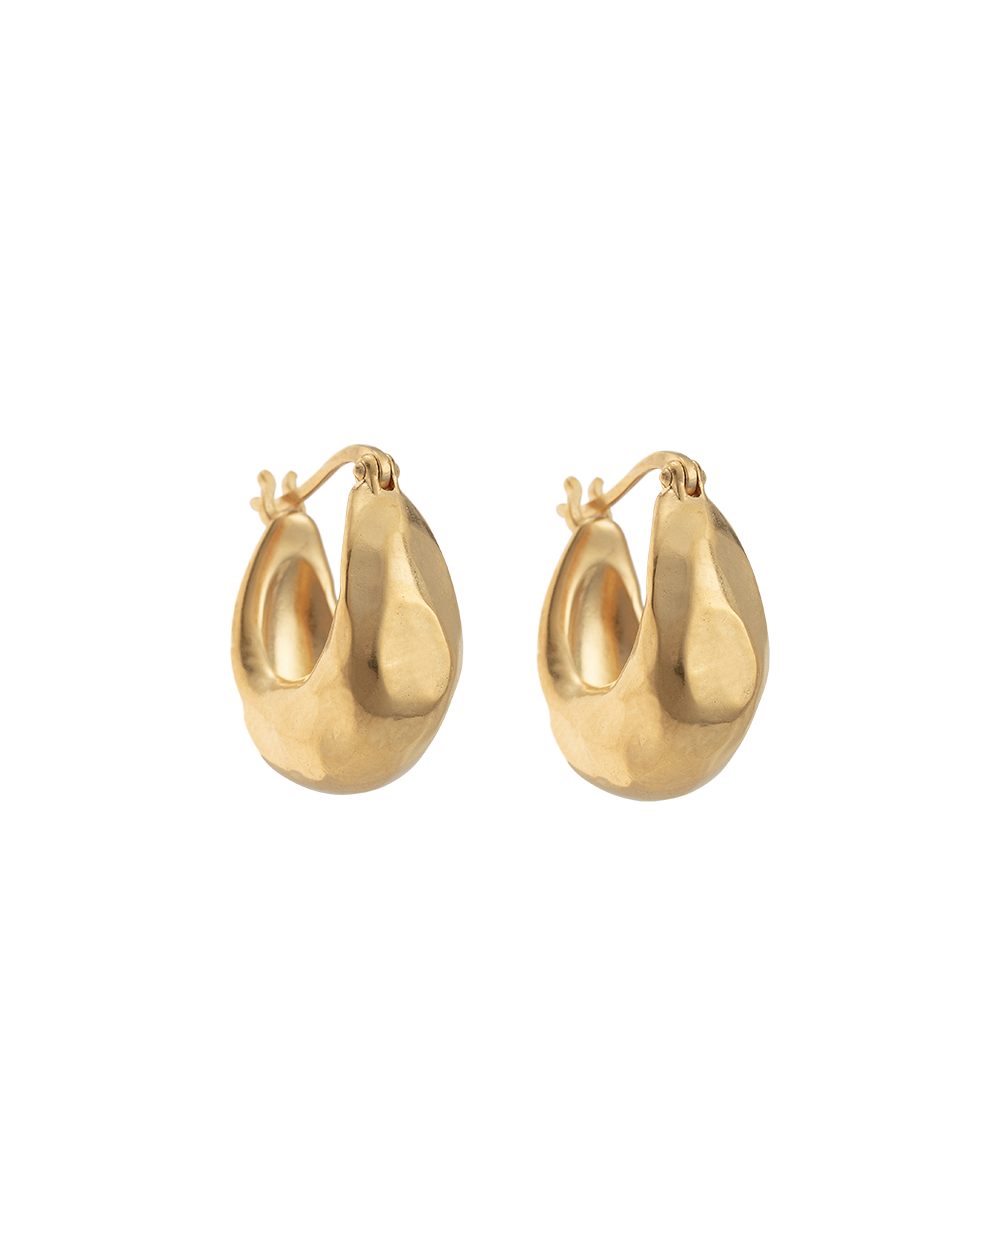 ESSENCE HOOPS SMALL (18K-GOLD-PLATED) - FRONT